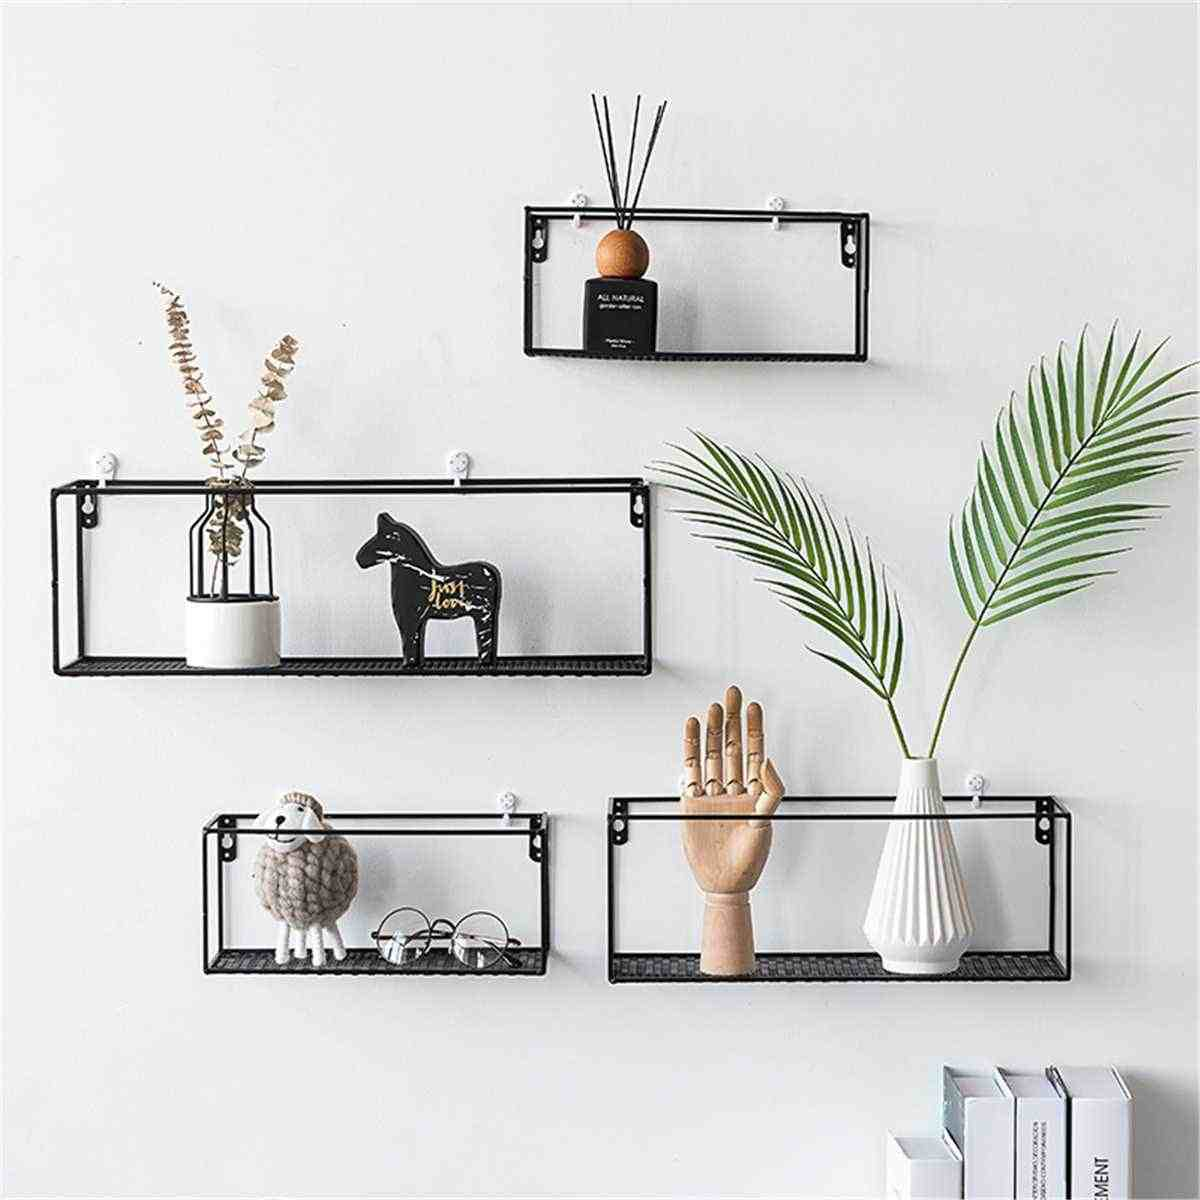 Black Iron Wall Shelf Wall Mounted Storage Rack Organization For Kitchen Bedroom Home Decor Kid Room Diy Wall Decoration Holder